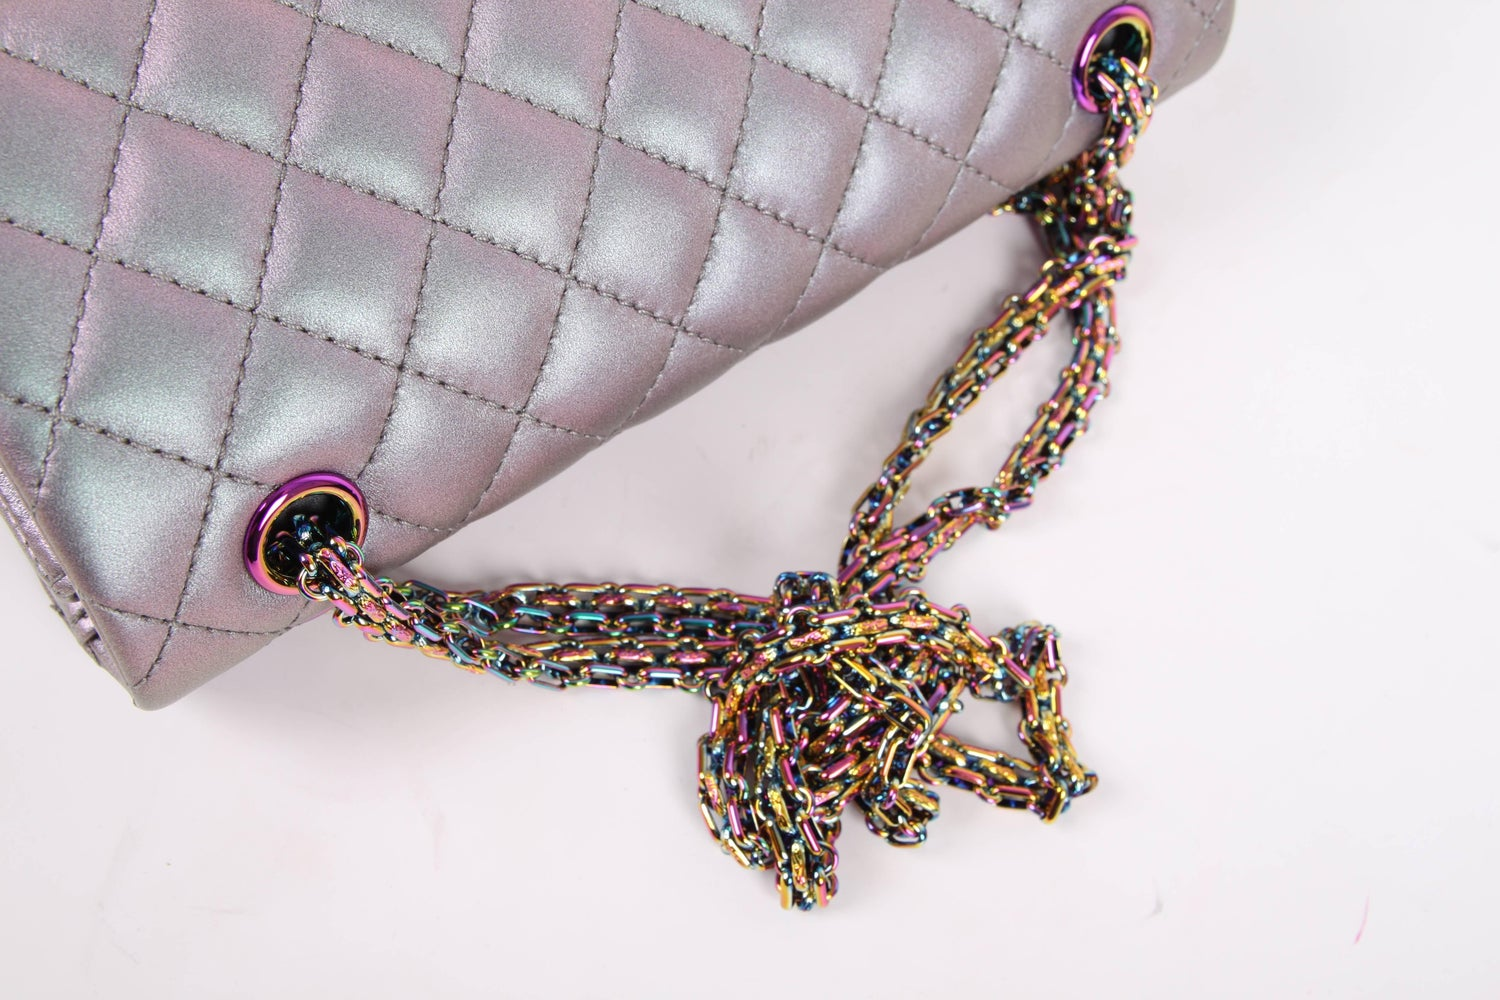 76e03a04afa8 Chanel Medium 2.55 Reissue Double Flap Bag - Lilac Iridescent Mermaid at  1stdibs